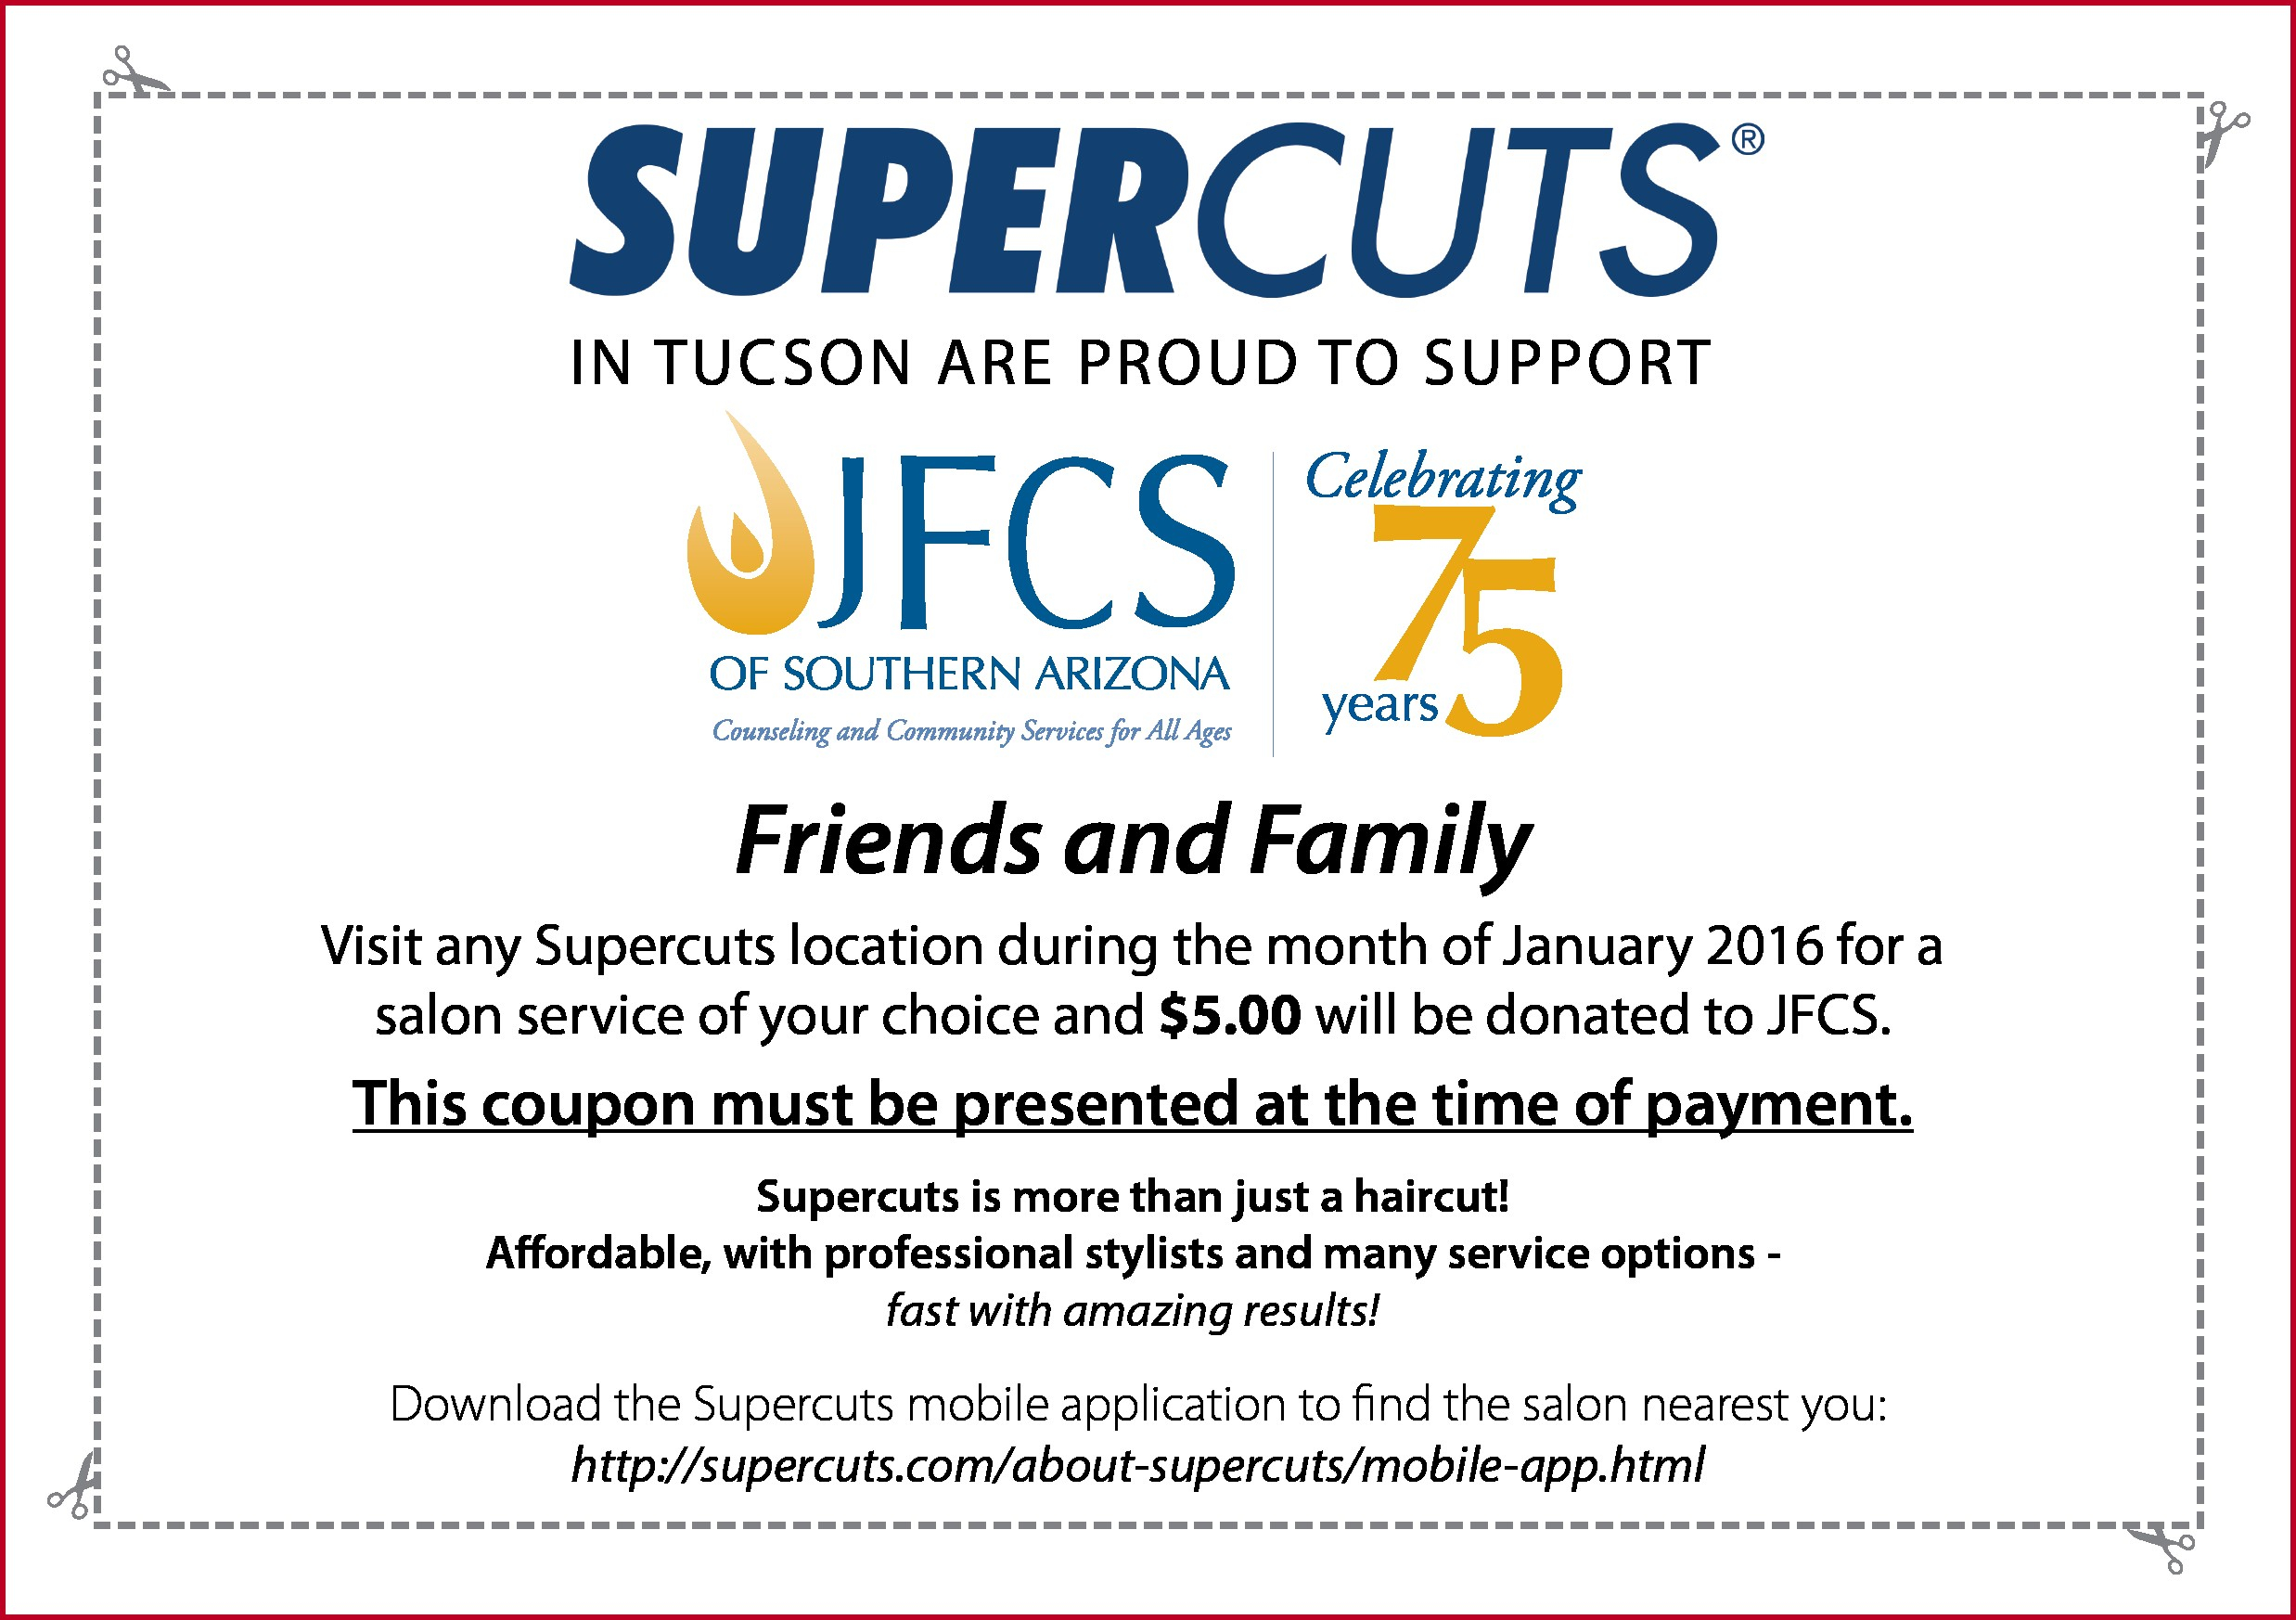 Supercuts Coupon $5 Off Haircut (92+ Images In Collection) Page 2 - Supercuts Free Haircut Printable Coupon